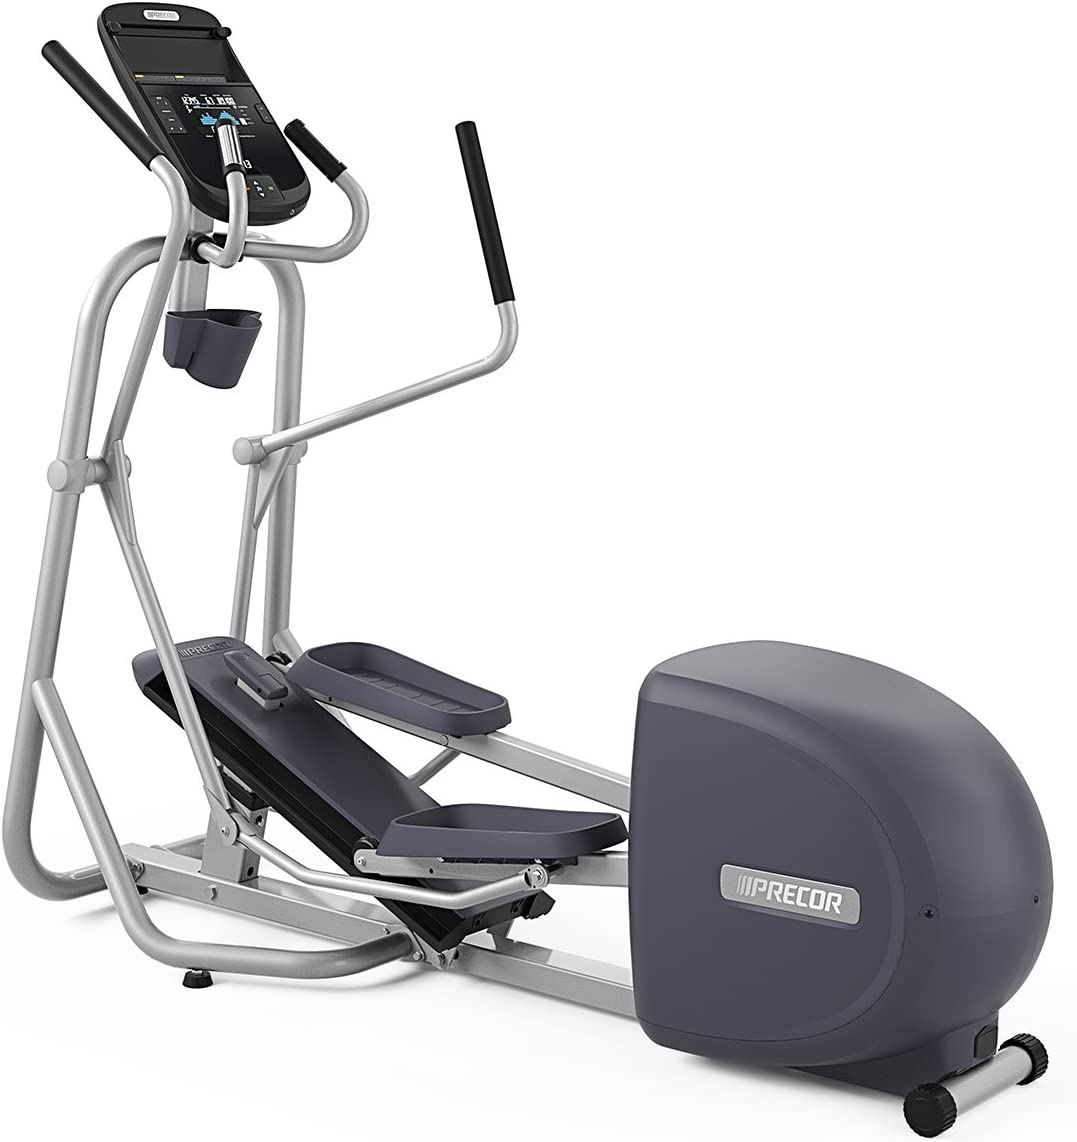 Best Elliptical Cross Trainer Precor Efx 222 Elliptical < image 1 of 1 >. best elliptical cross trainer precor